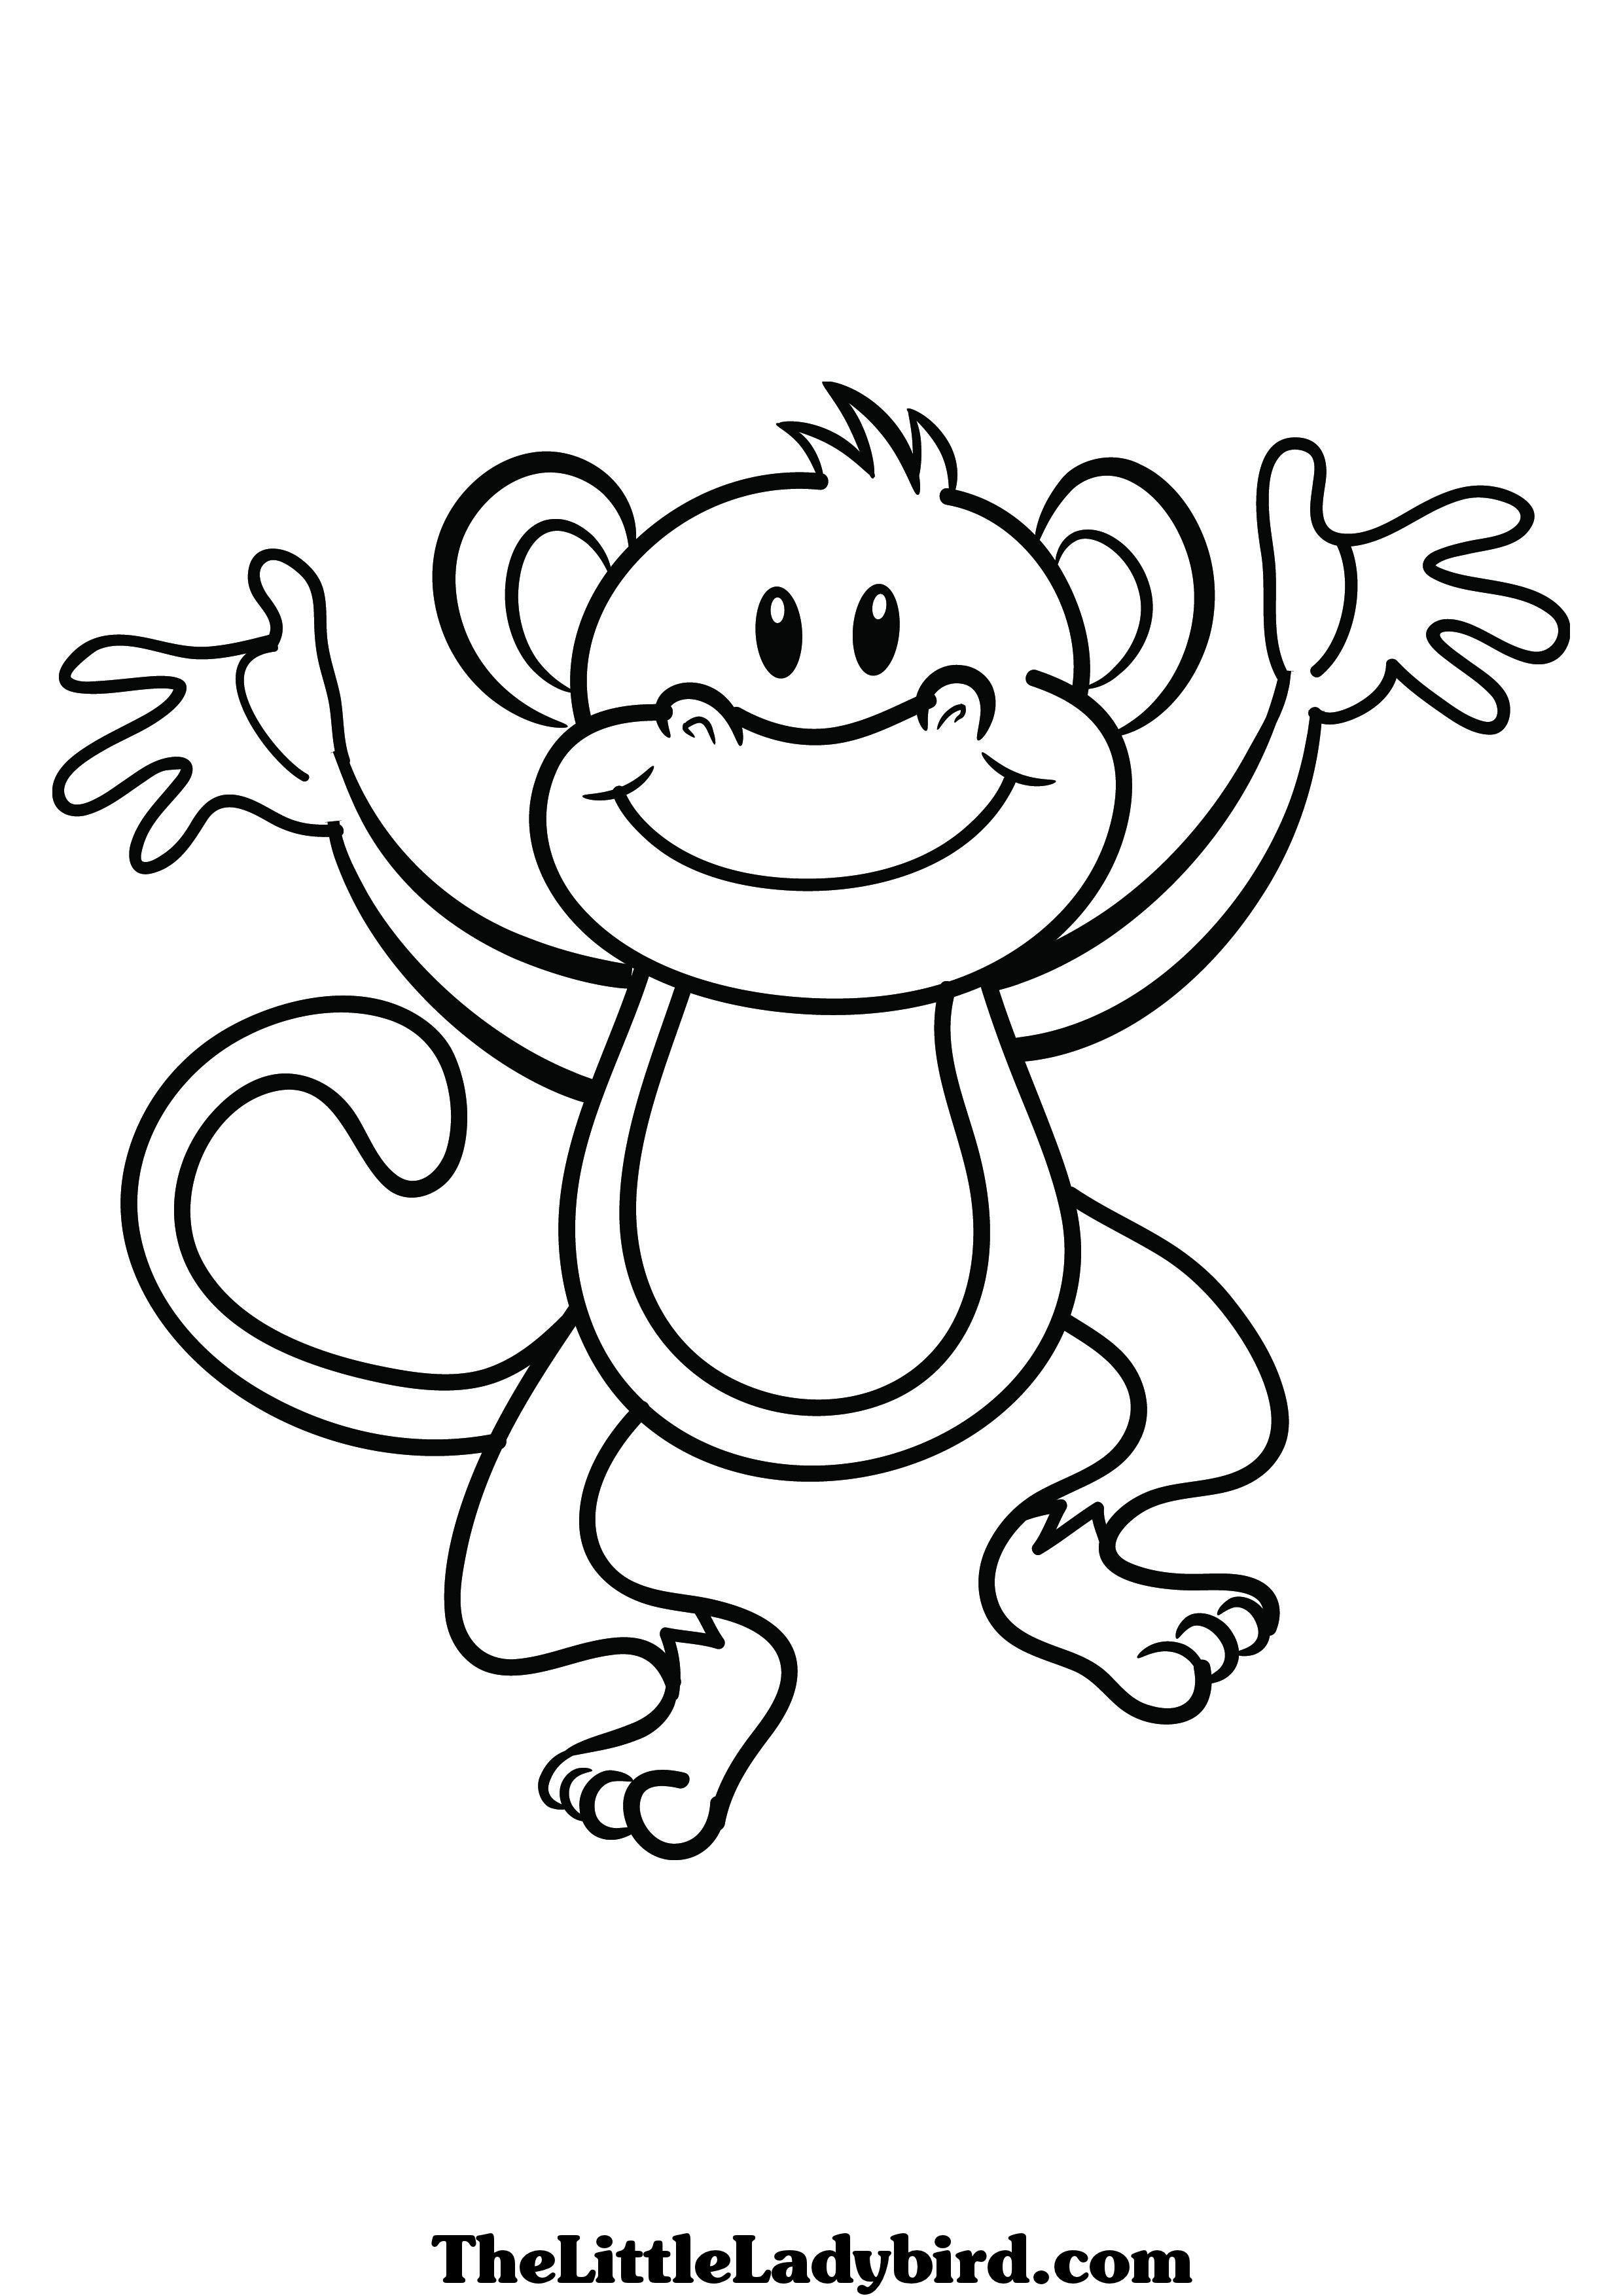 egg coloring page - monkey coloring page 1277